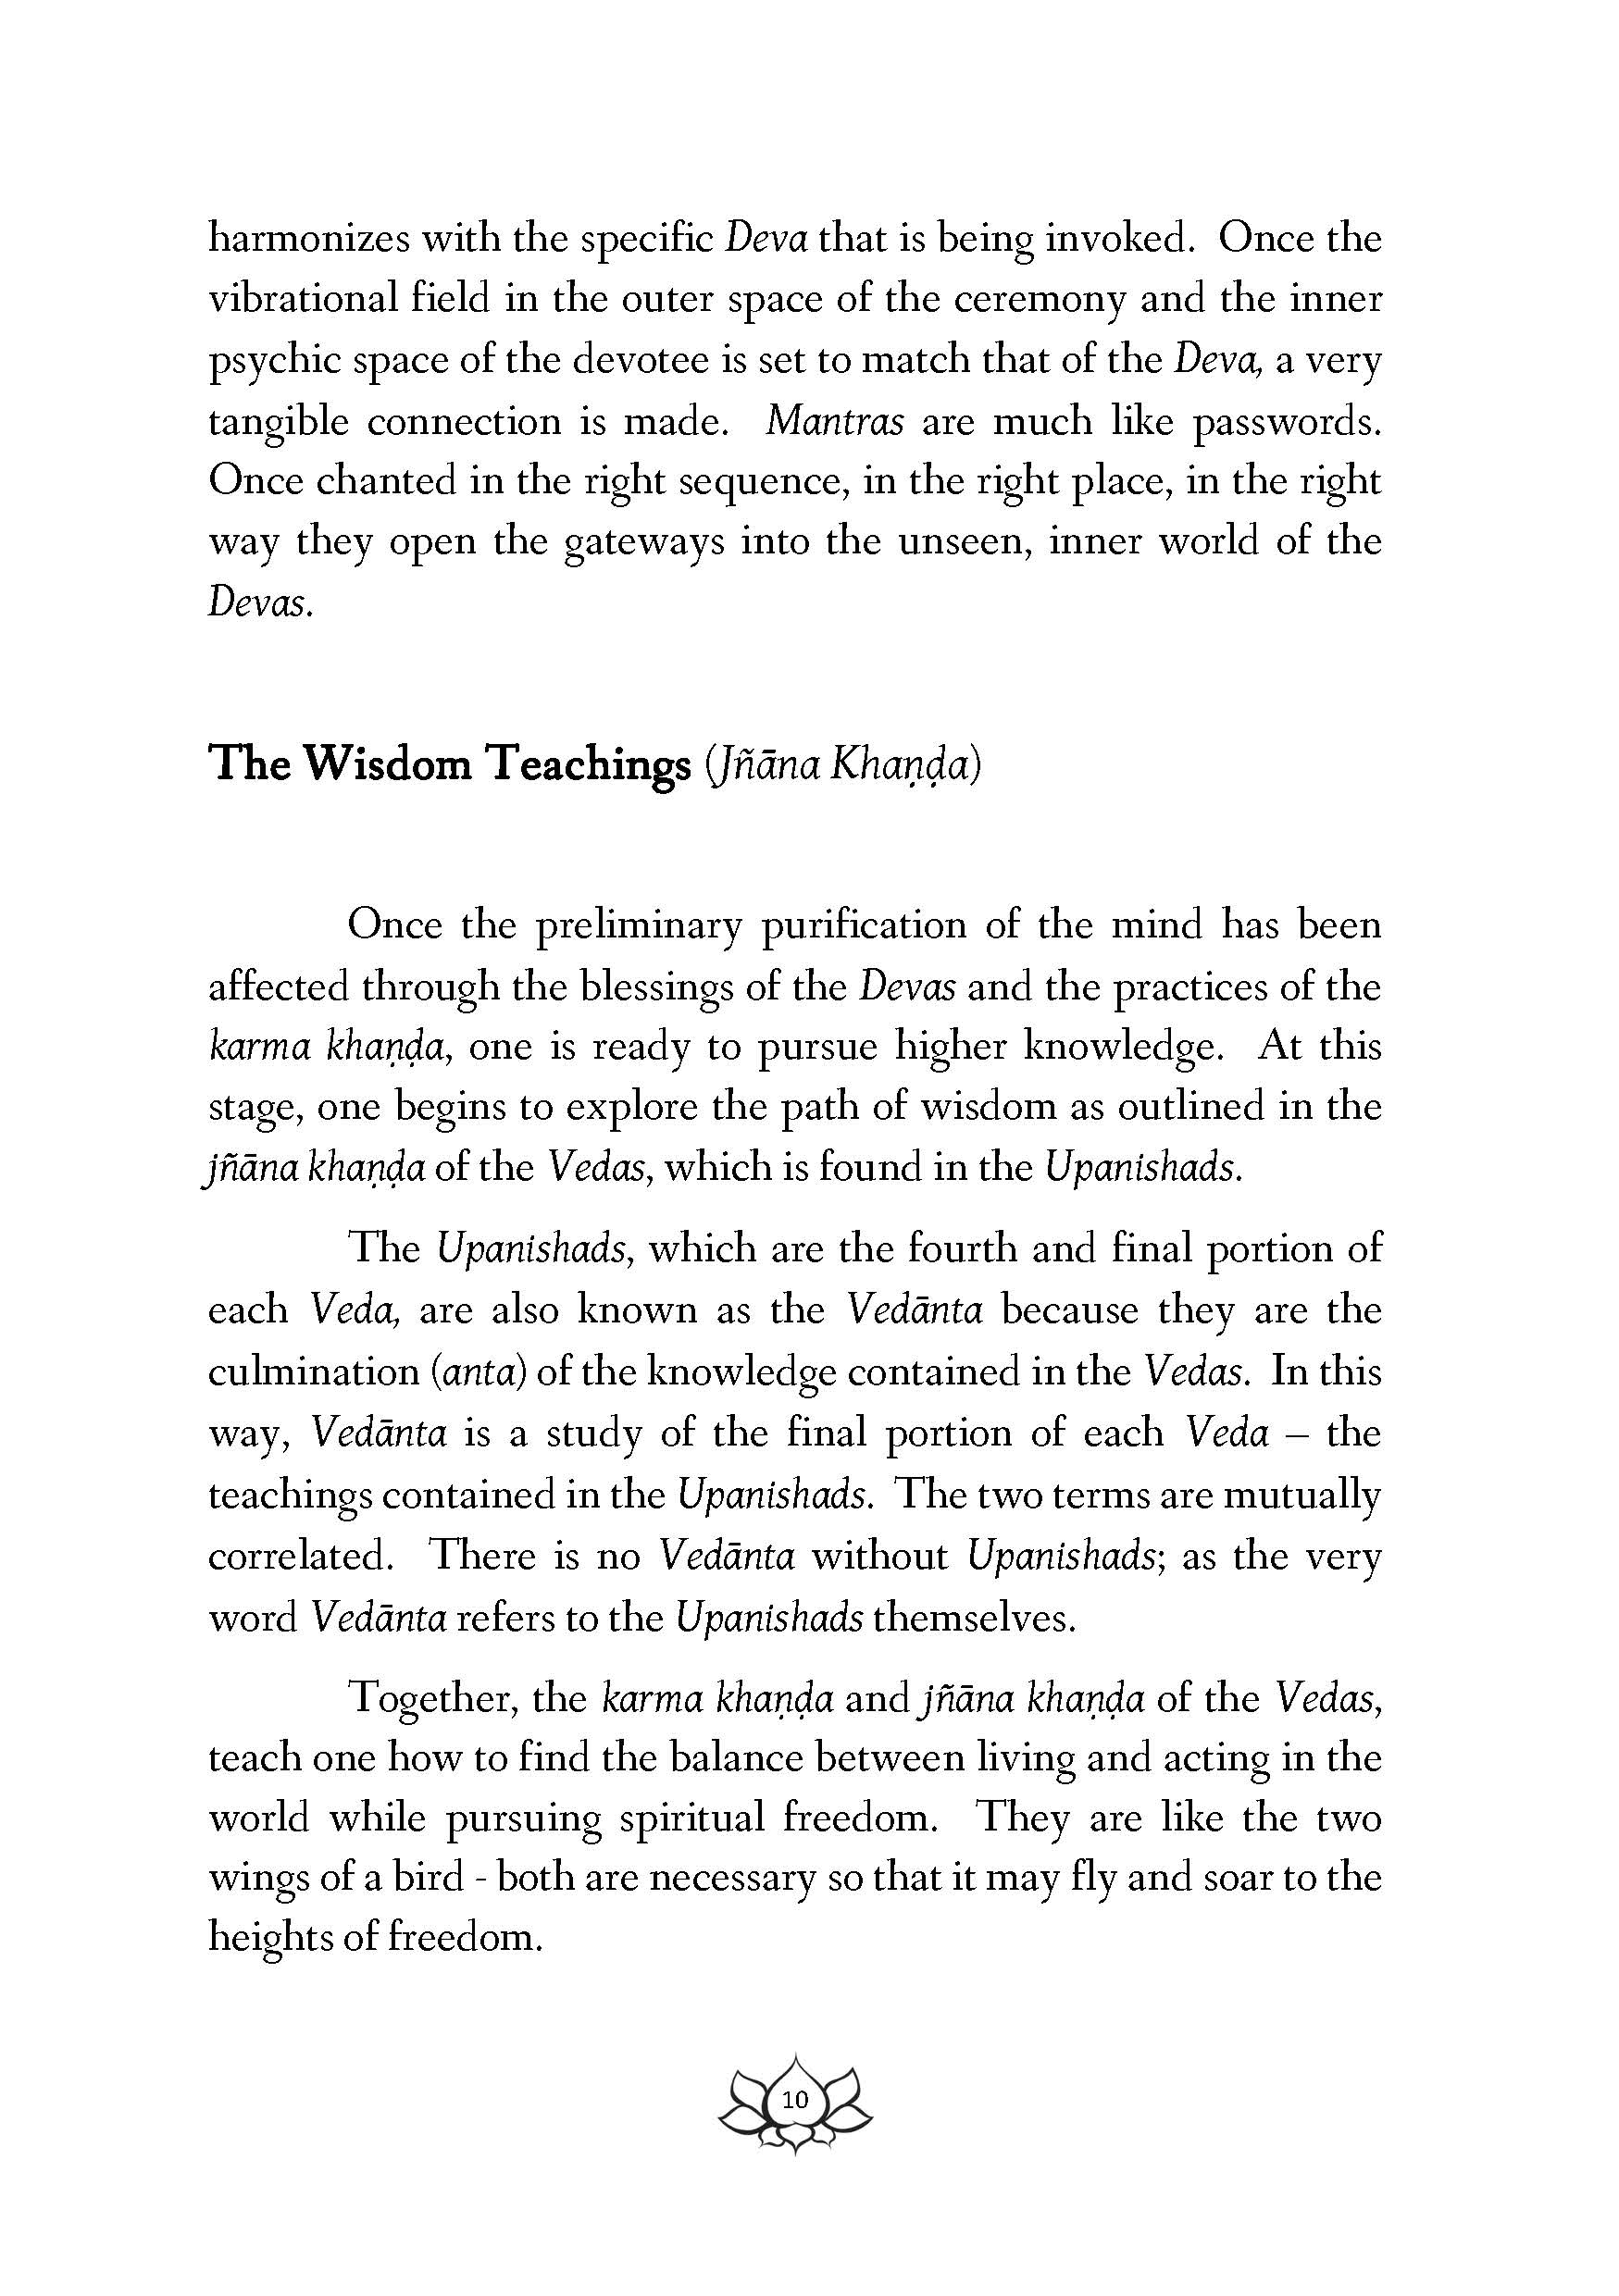 The Way of Oneness - PDF Download_Page_023